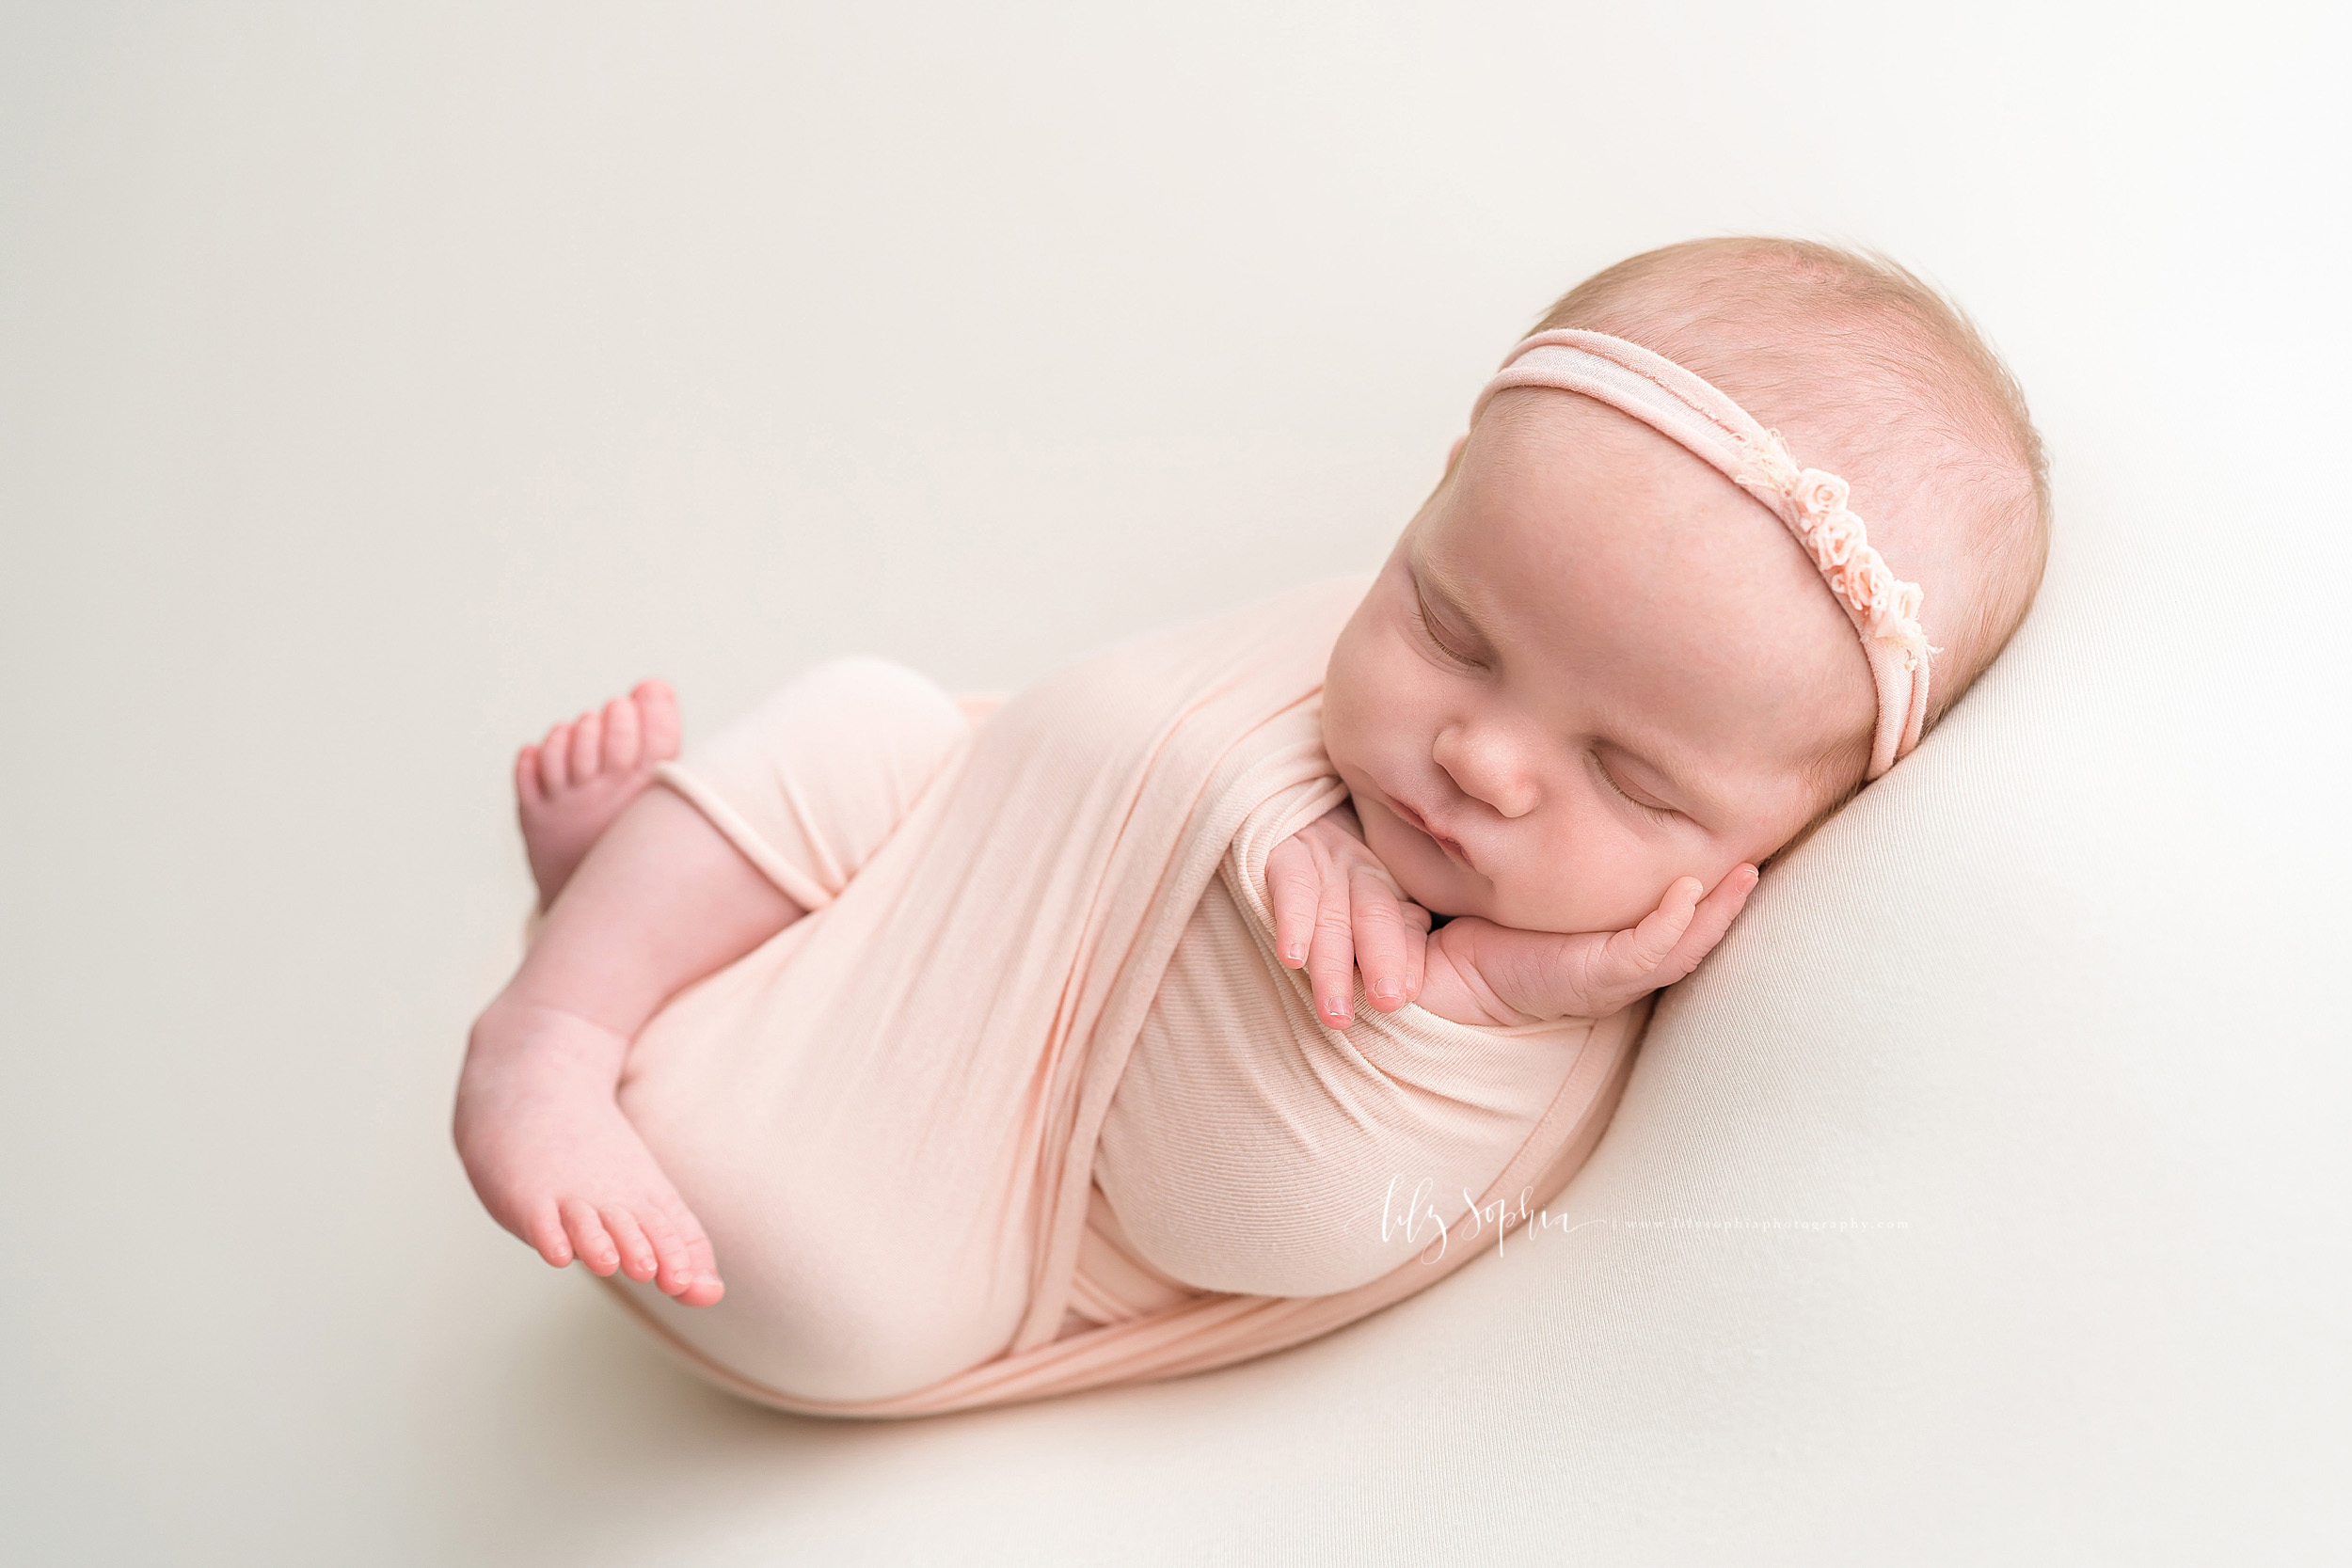 Image of a sleeping infant girl wrapped in a knit pale pink swaddle.  Her legs are bent and her feet are sticking out the bottom of the swaddle while her little hands are sticking out the top.  Her left hand is open and resting on her cheek.  She is wearing a pale pink headband with three tiny roses.